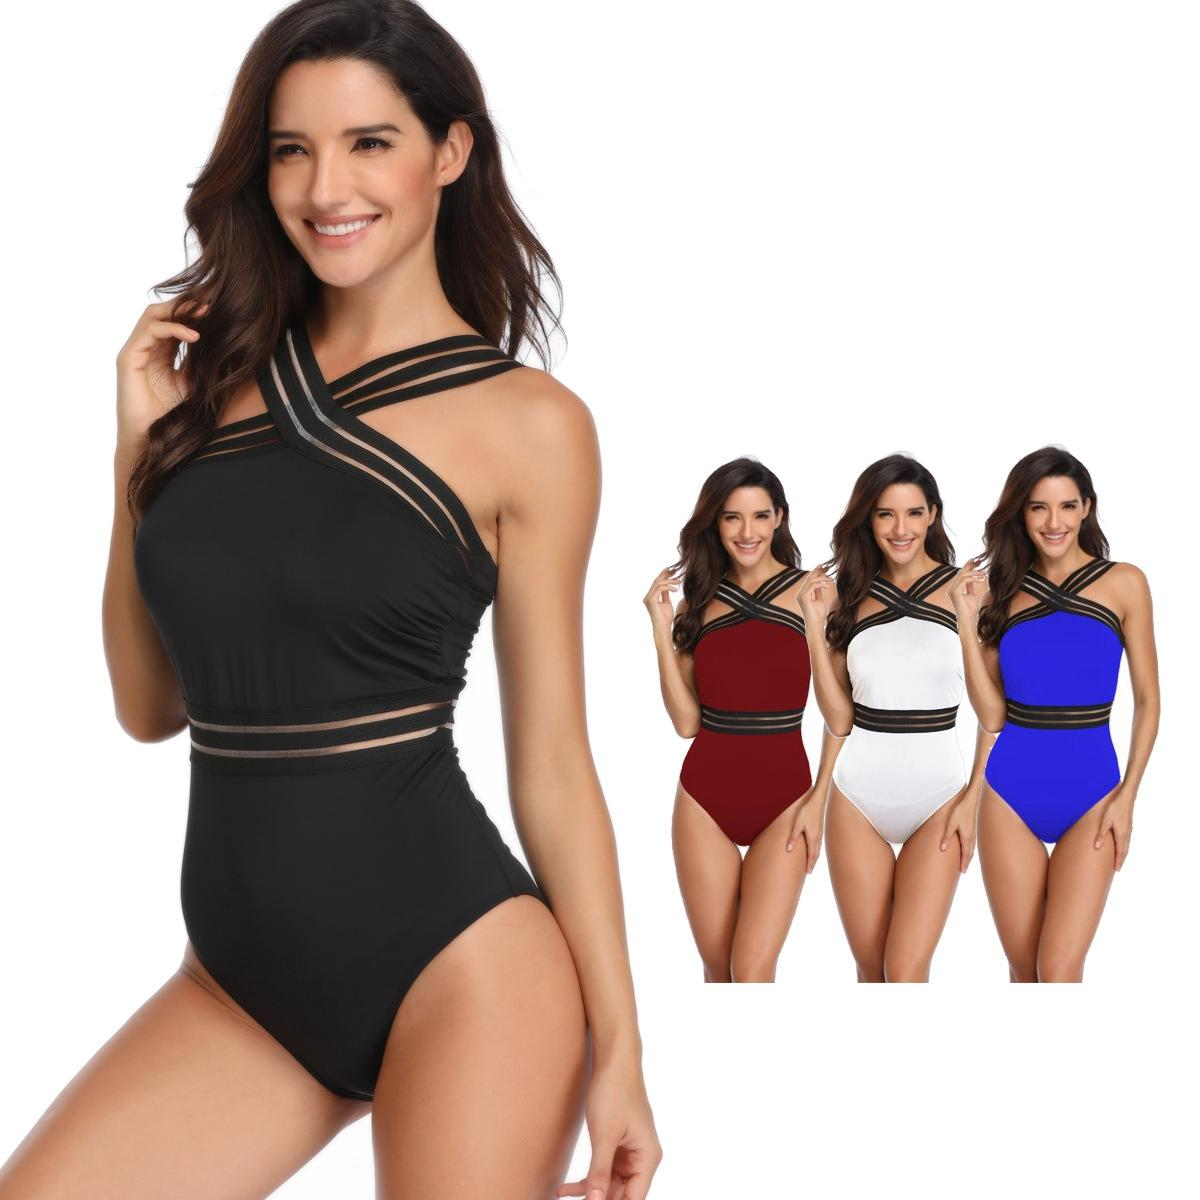 7bc2cbaa69acb 2019 Womens One Piece Suits Backless Swimsuits Tummy Control Sexy Swimwear  Bikinis Athletic Training Slimming Bathing Swim Wear MMA1876 From Mr_sport,  ...